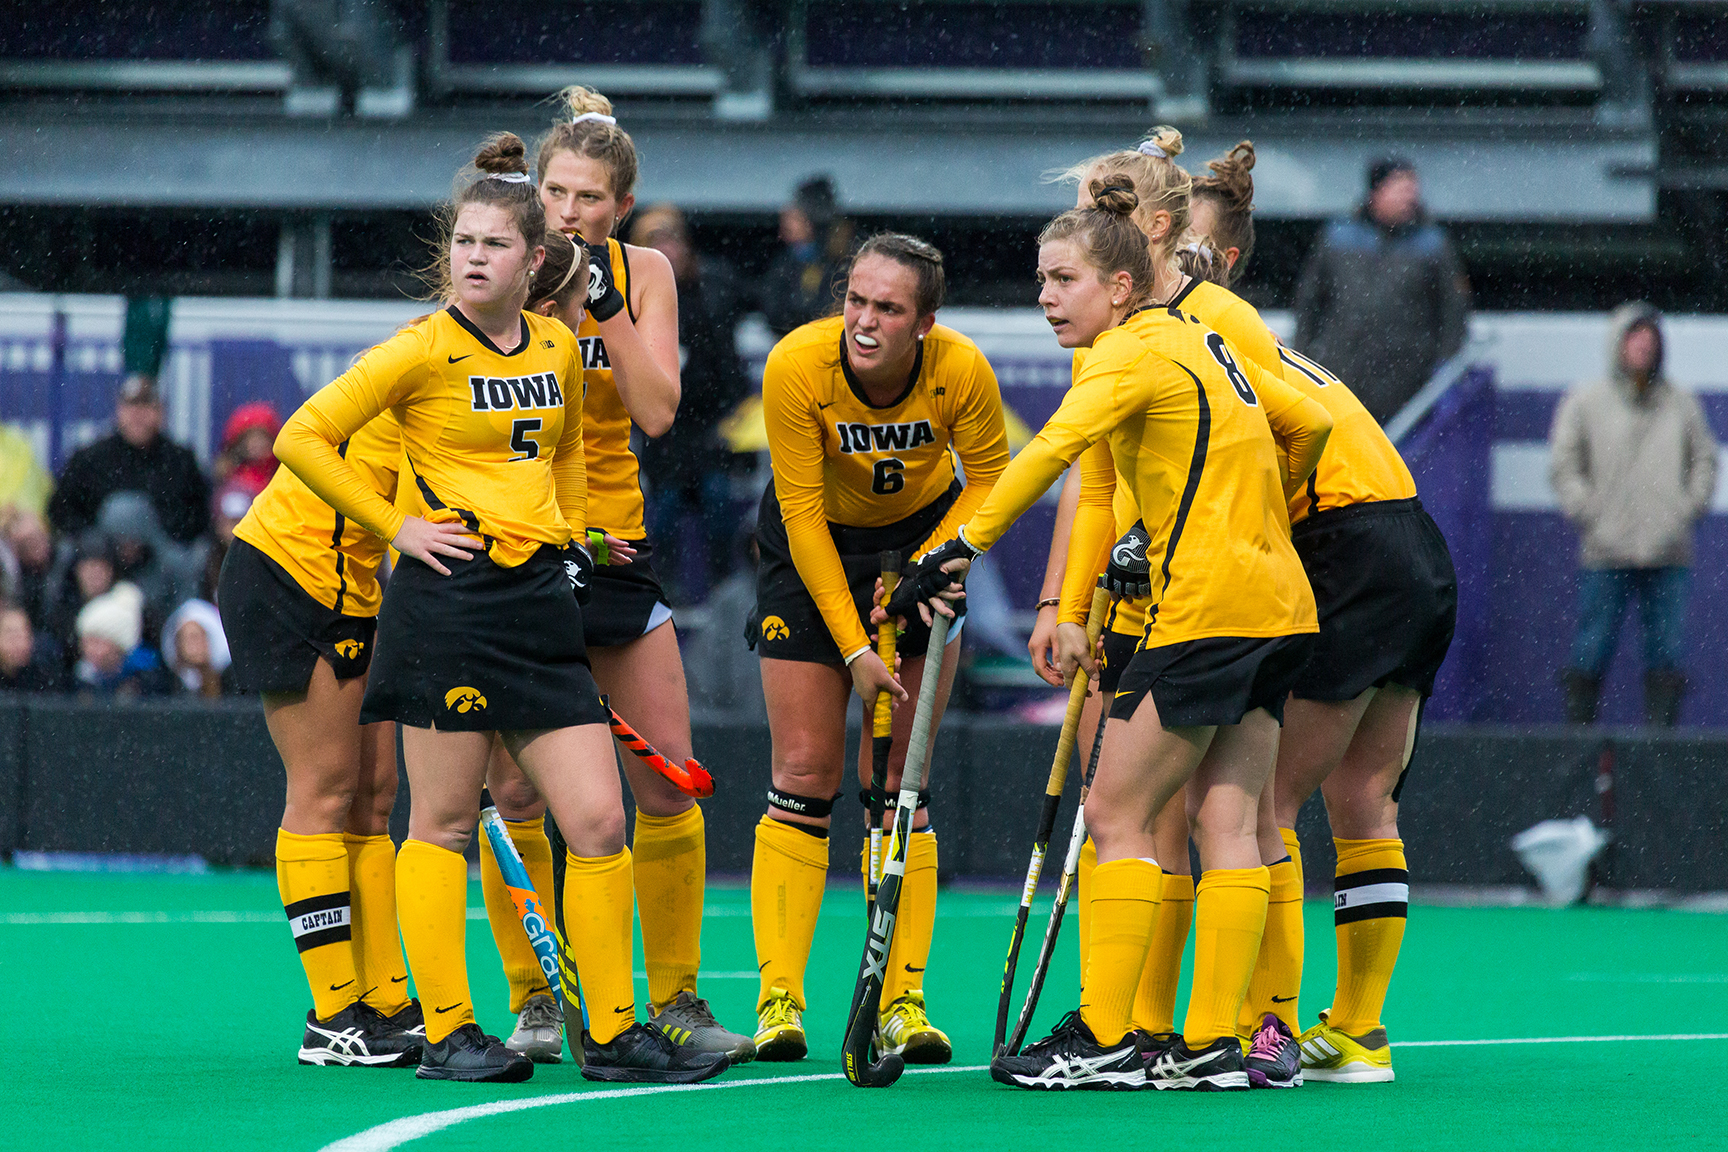 Iowa players look back at their bench during the Championship Game in the Big Ten Field Hockey Tournament at Lakeside Field in Evanston, IL on Sunday, Nov. 3, 2018. The no. 2 ranked Terrapins defeated the no. 8 ranked Hawkeyes 2-1.